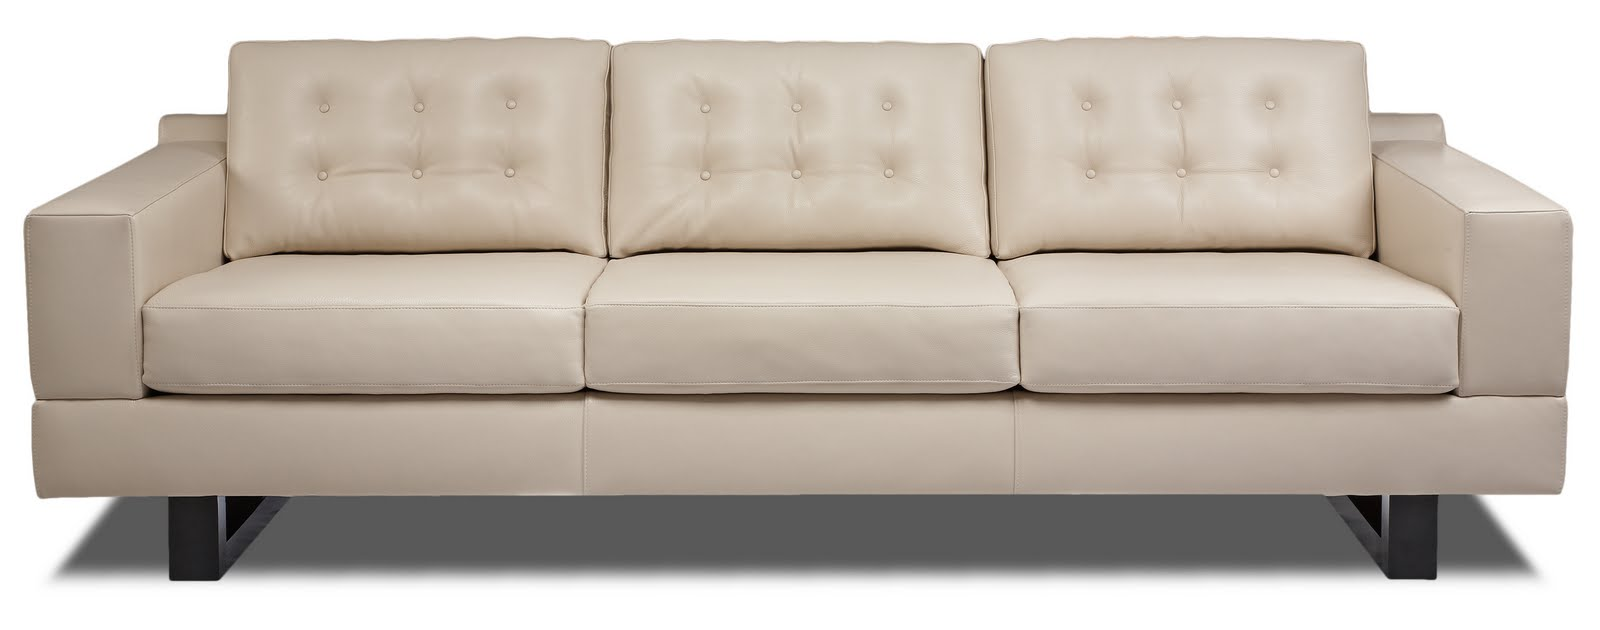 What Can You Use To Clean A Leather Couch Insured By Laura